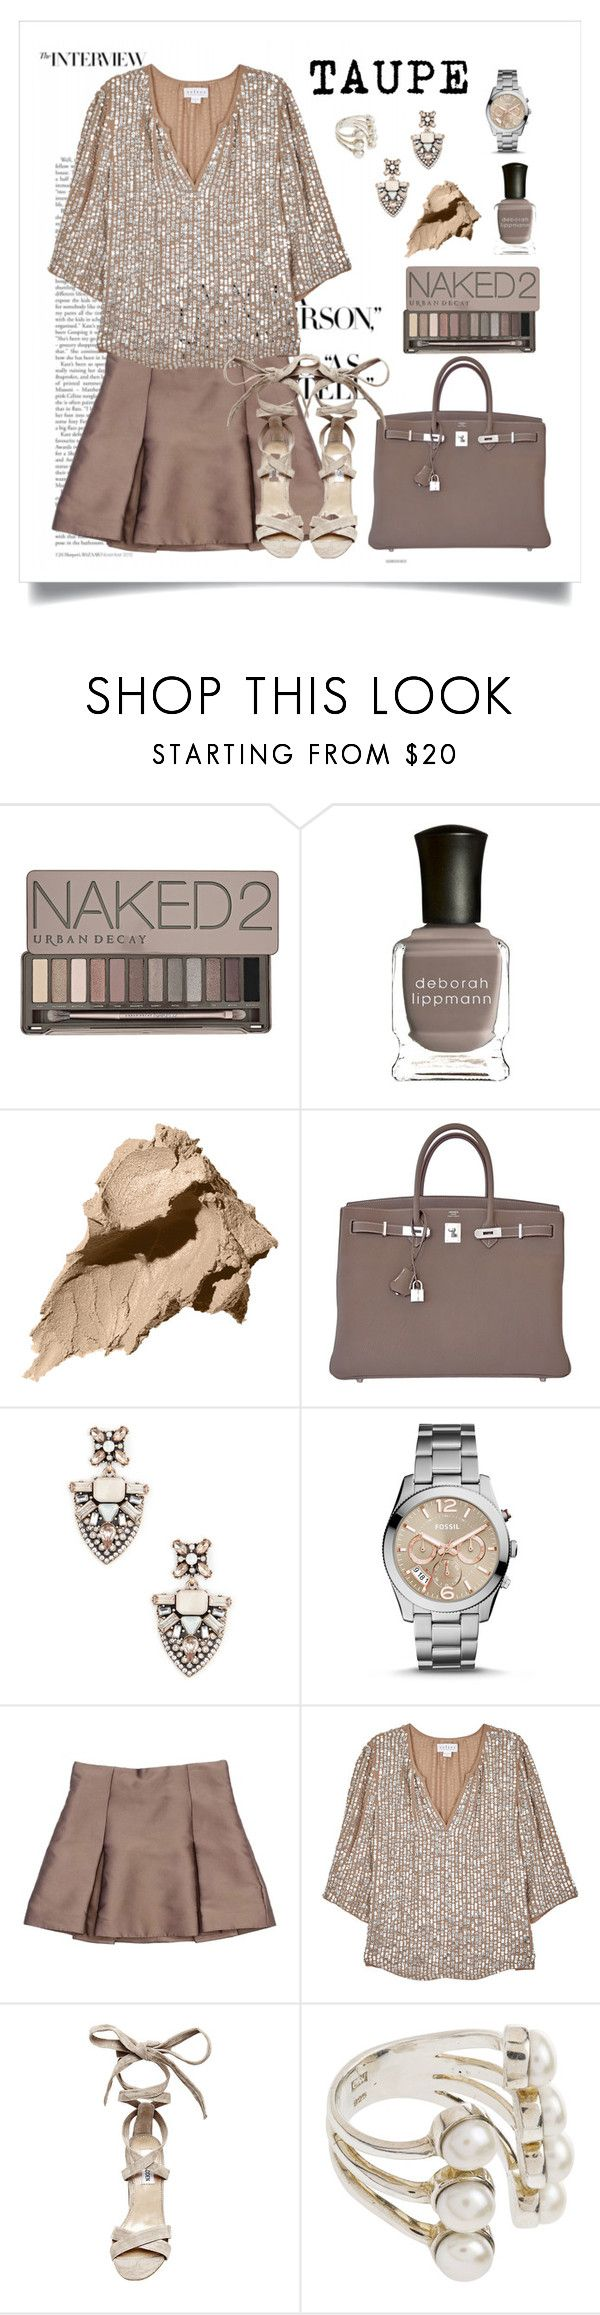 """""""Taupe"""" by helloume ❤ liked on Polyvore featuring Urban Decay, Deborah Lippmann, Bobbi Brown Cosmetics, Hermès, Sole Society, FOSSIL, Marc Jacobs, Velvet by Graham & Spencer, Steve Madden and taupe"""